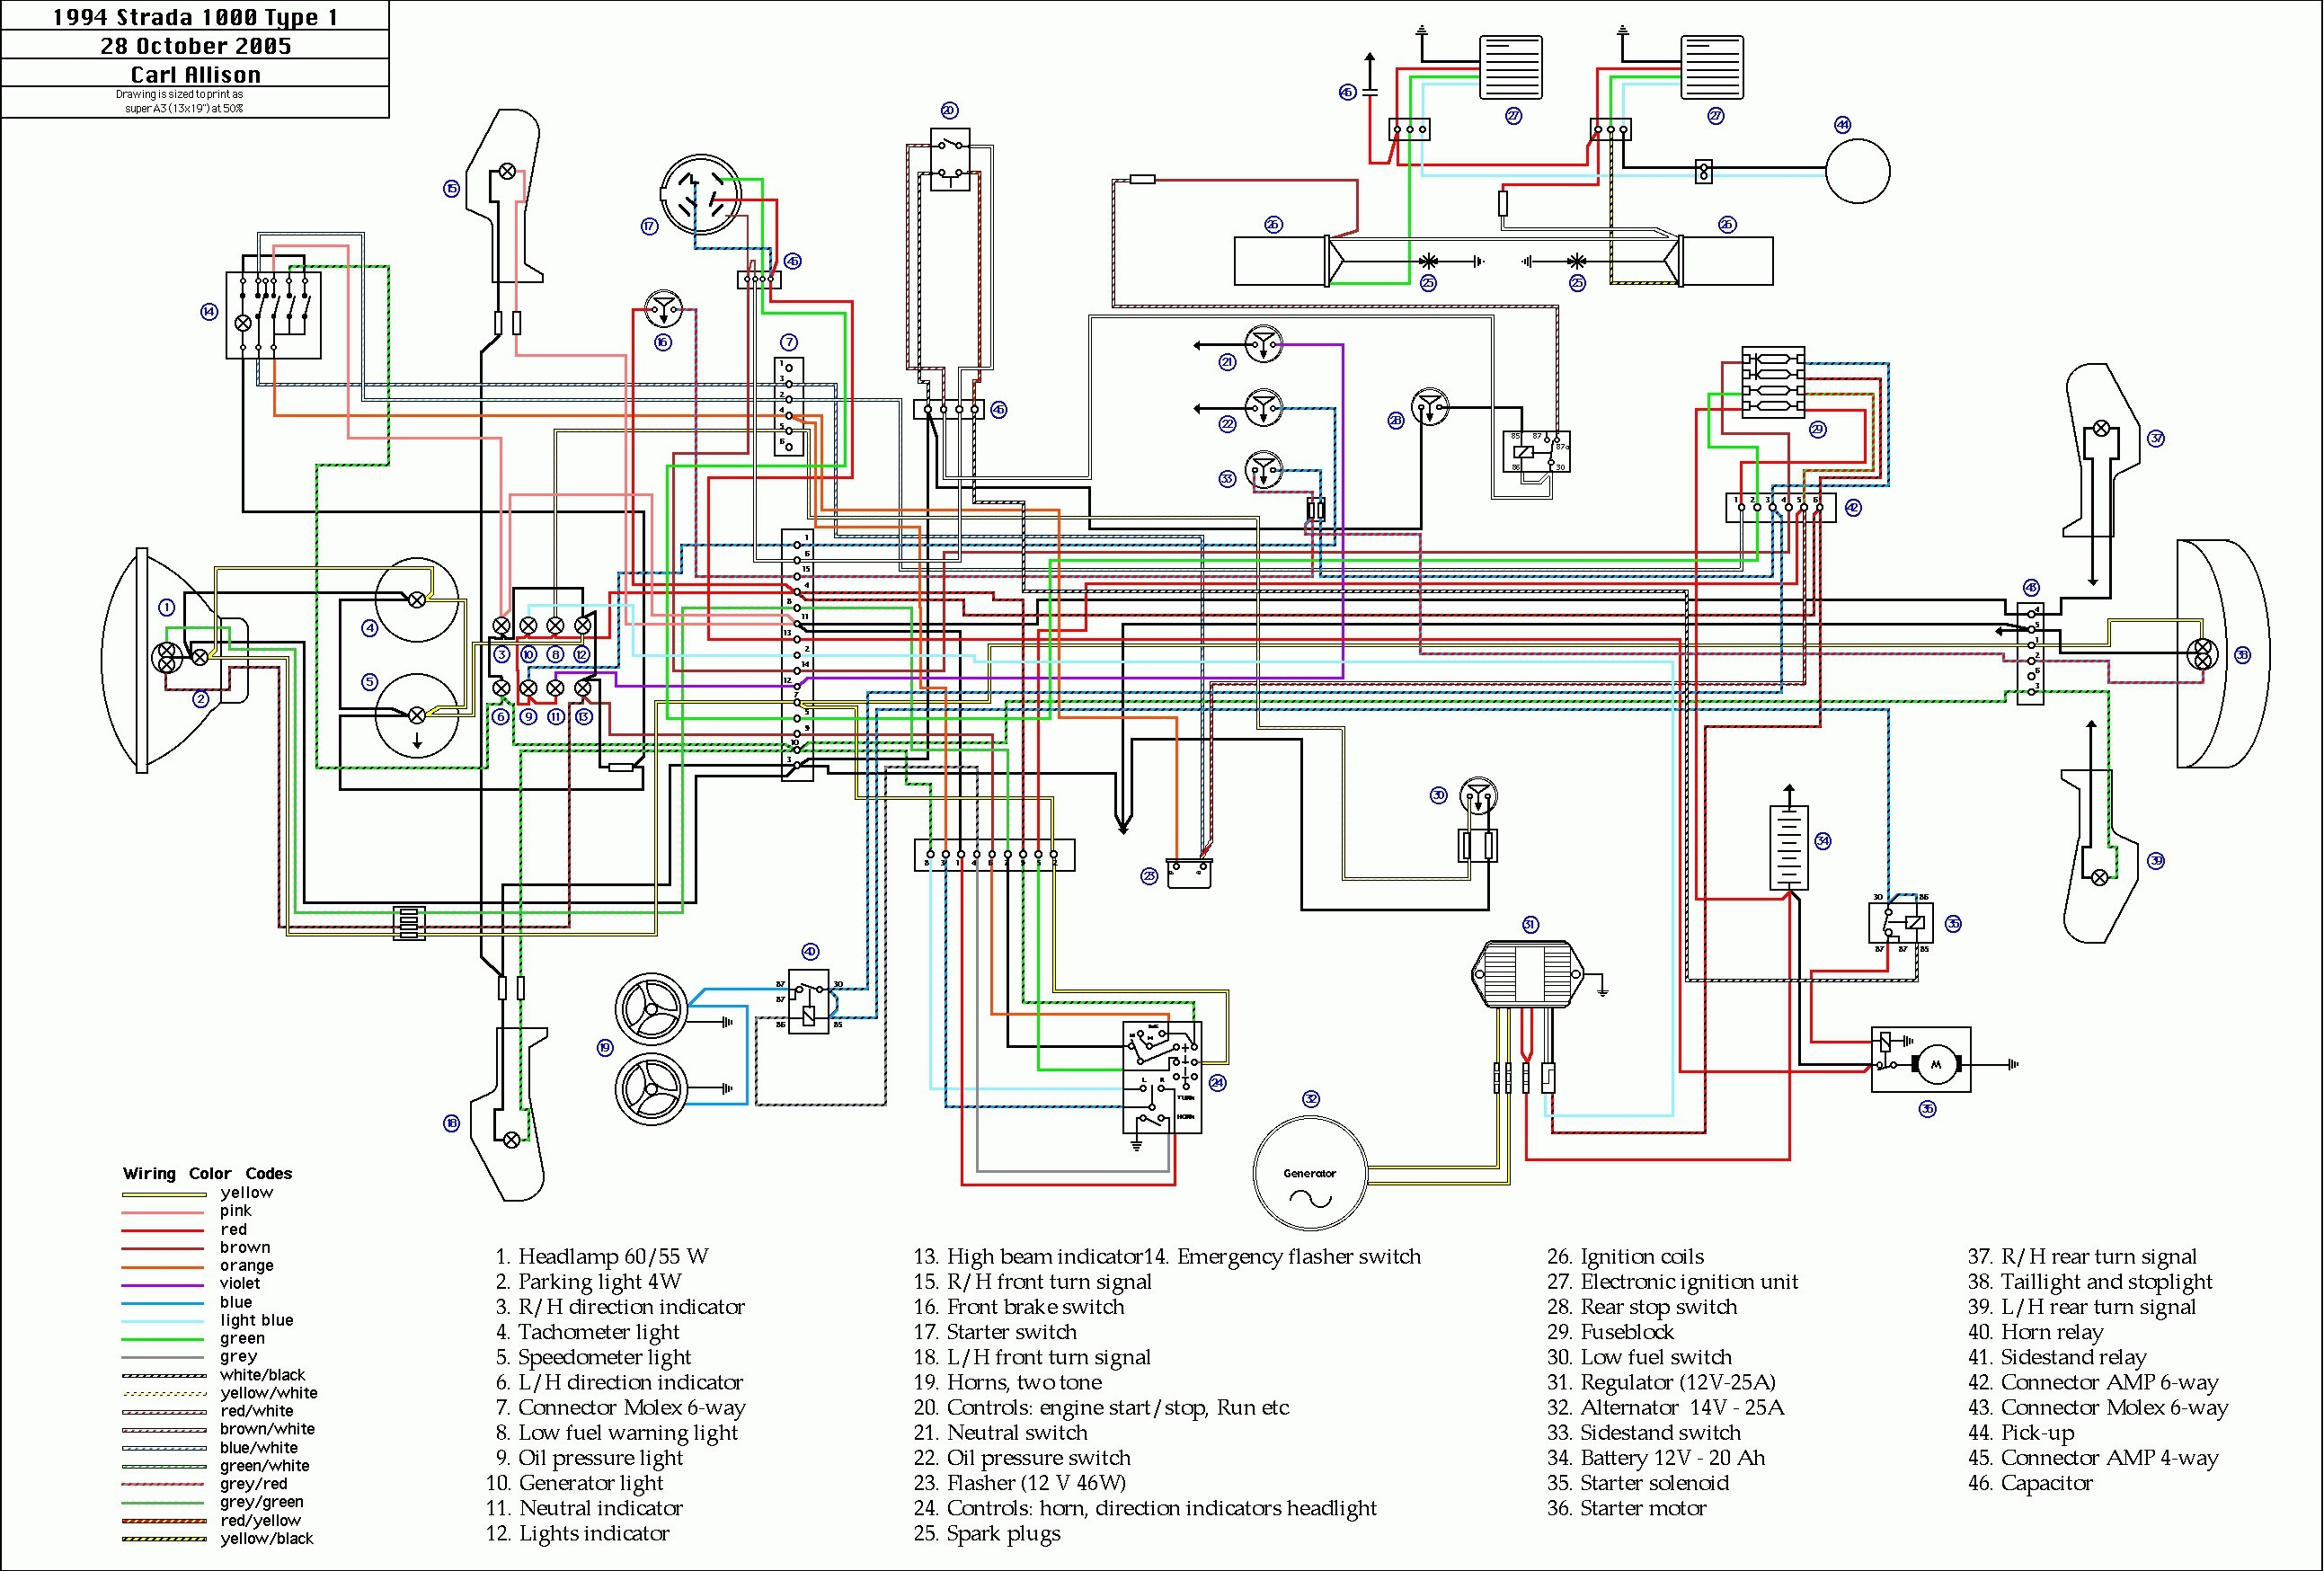 Turn Signal Wiring Diagrams Wiring Diagrams Konsult